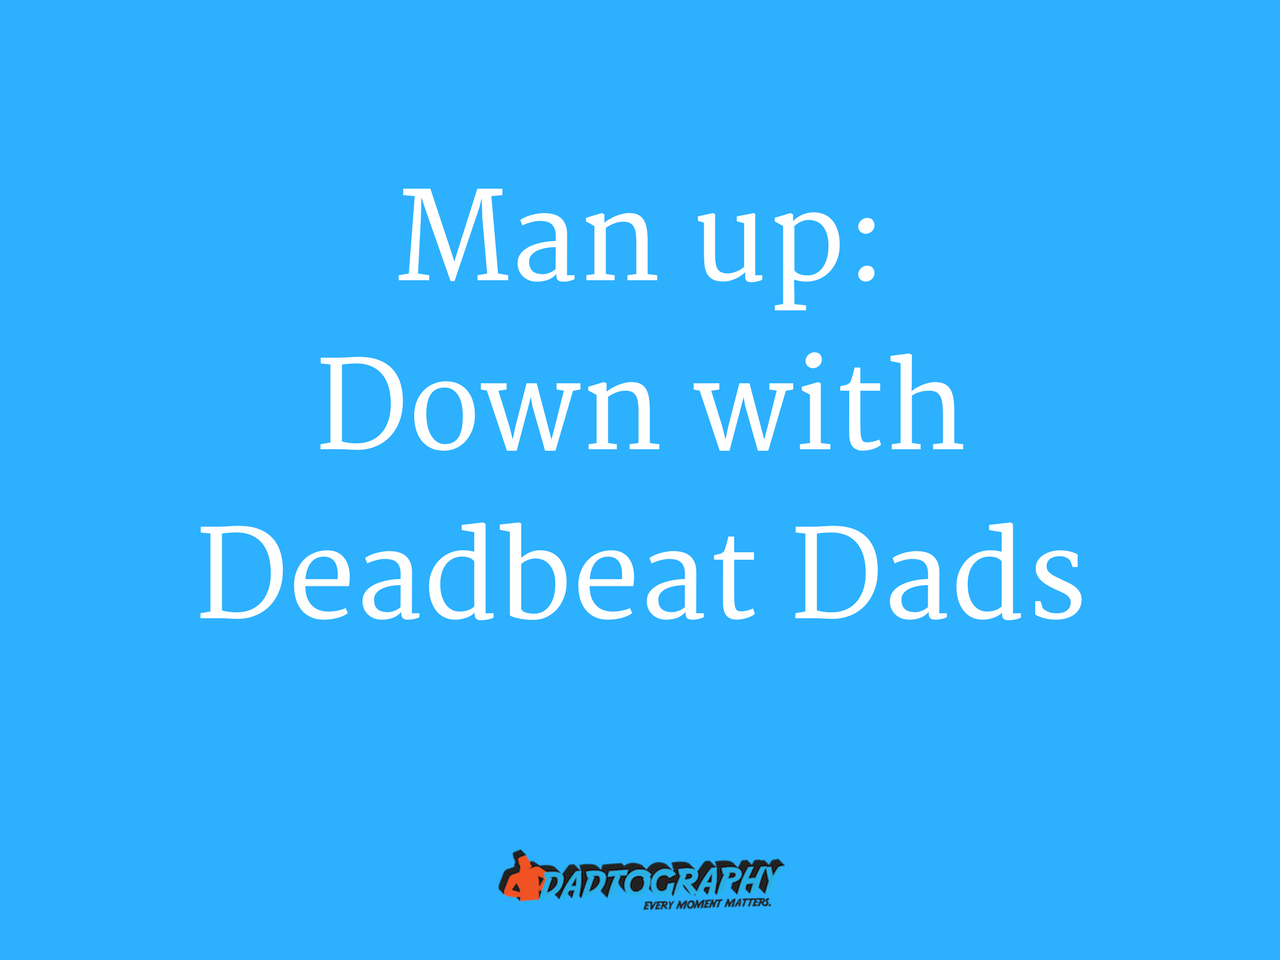 Man up: Down with Deadbeat Dads - Dadtography.com